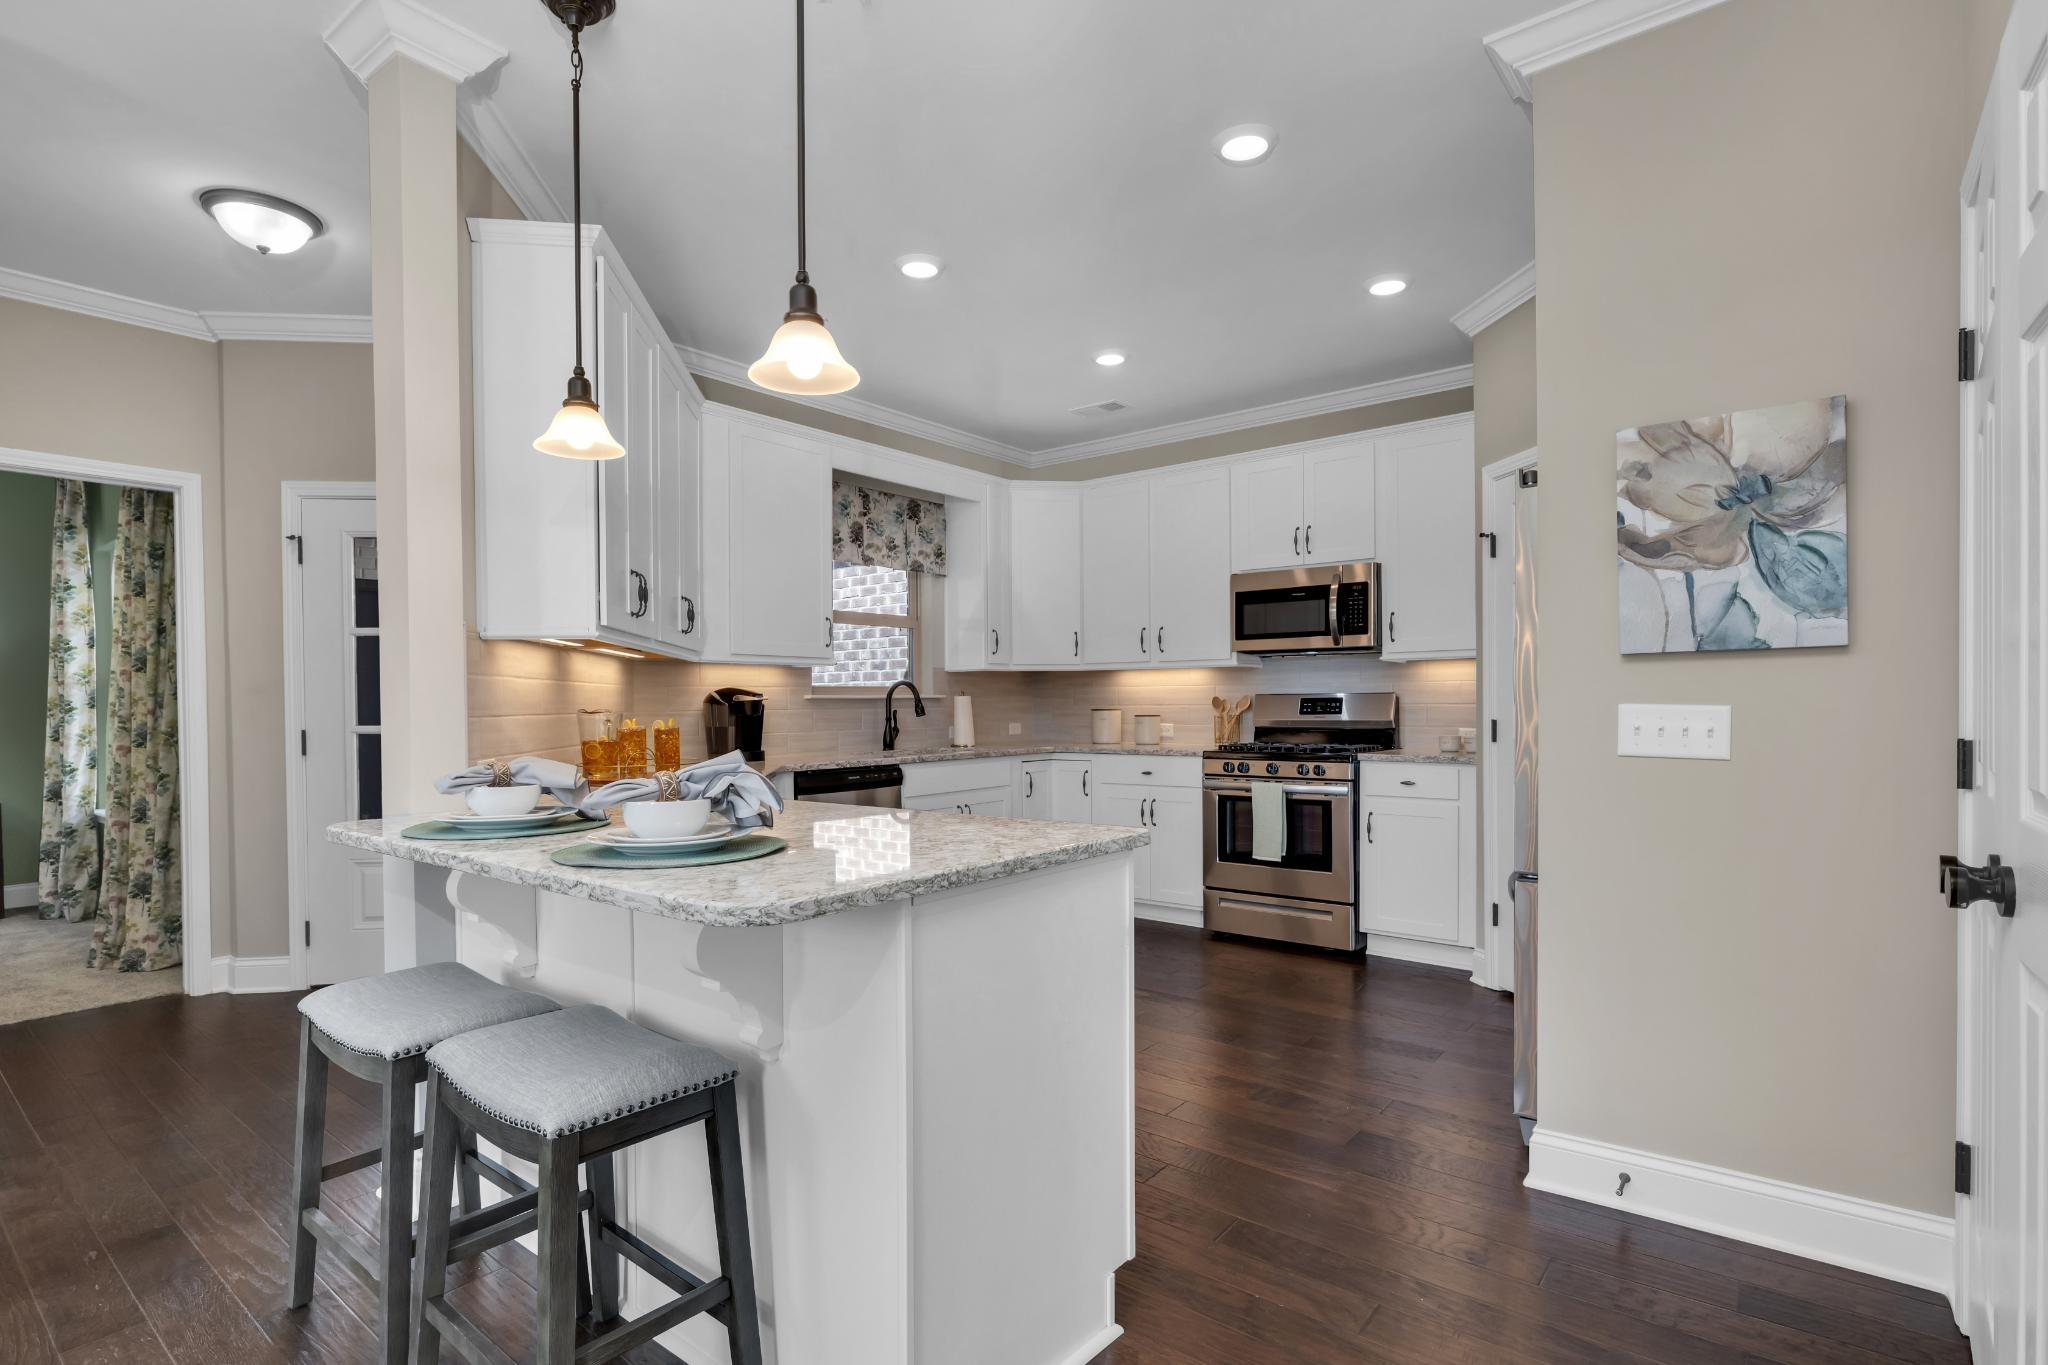 Kitchen featured in The Raleigh Courtyard Cottage By Goodall Homes in Knoxville, TN